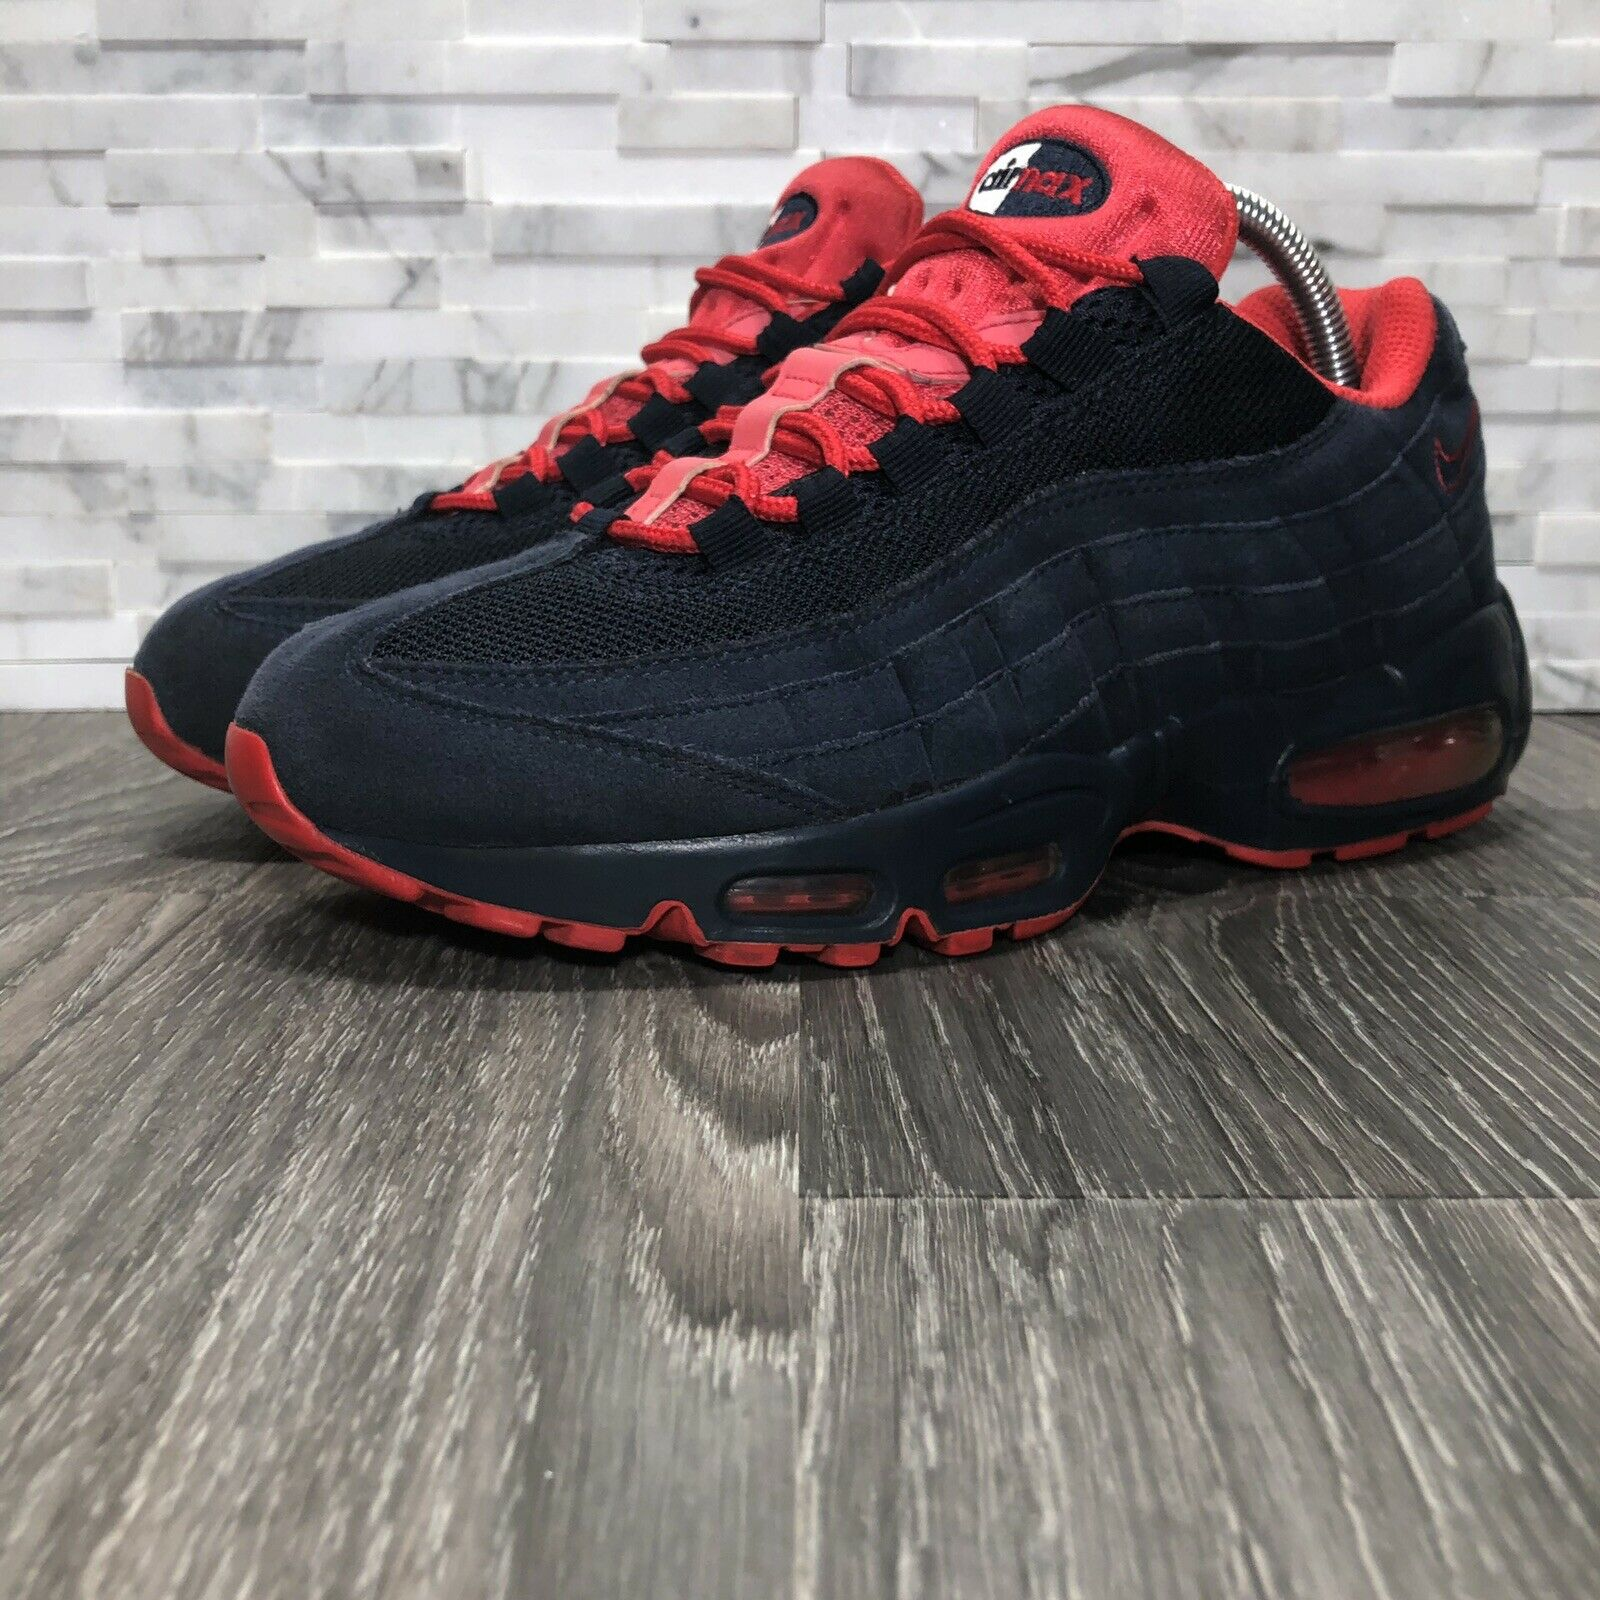 Nike Air Max 95 2011 Retro Obsidian bluee & Action Red Running shoes (609048-400)